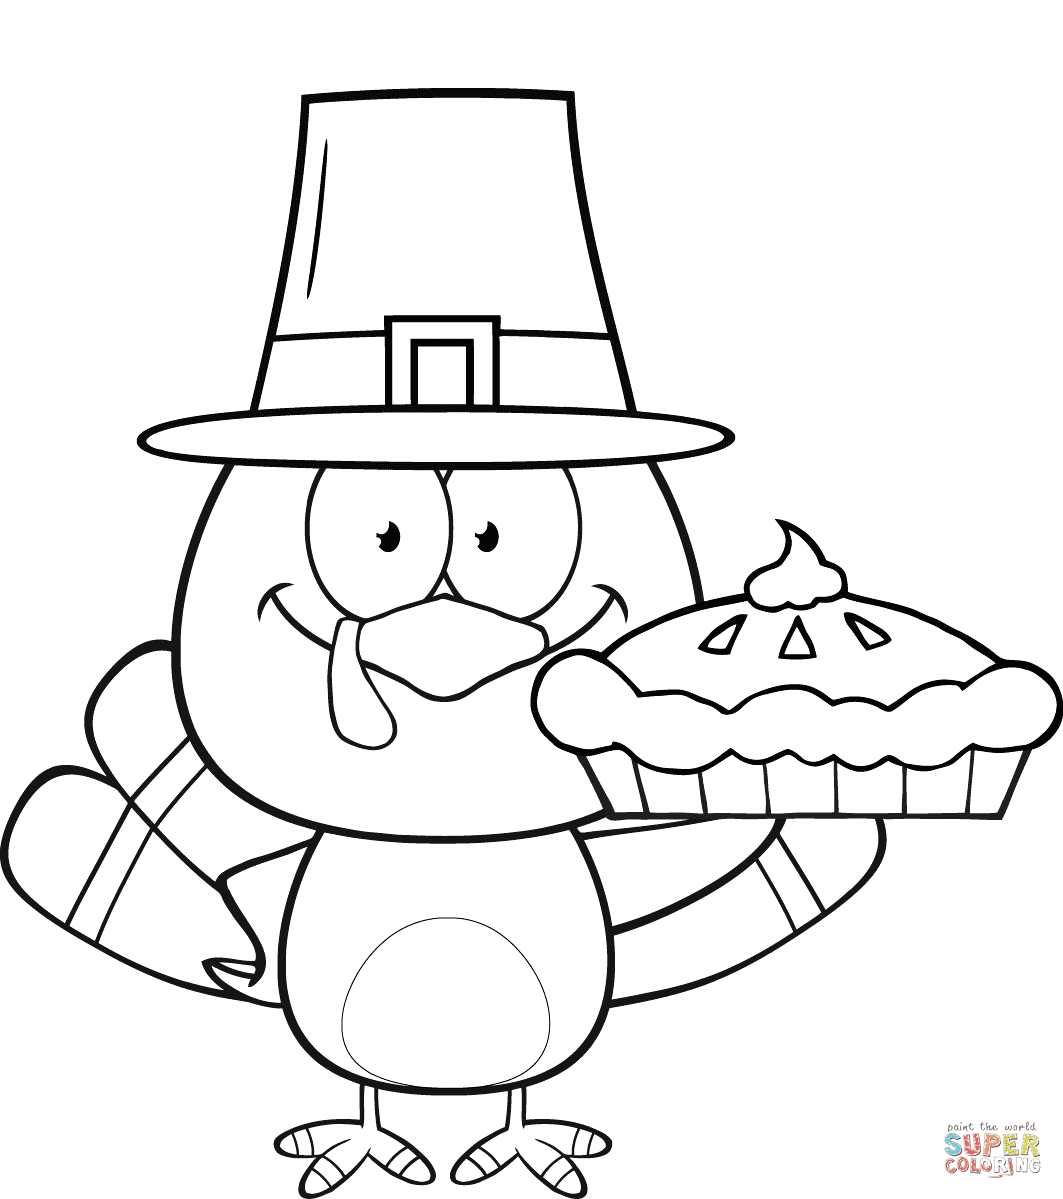 Cute Pilgrim Turkey Holding a Pie coloring page   Free ...